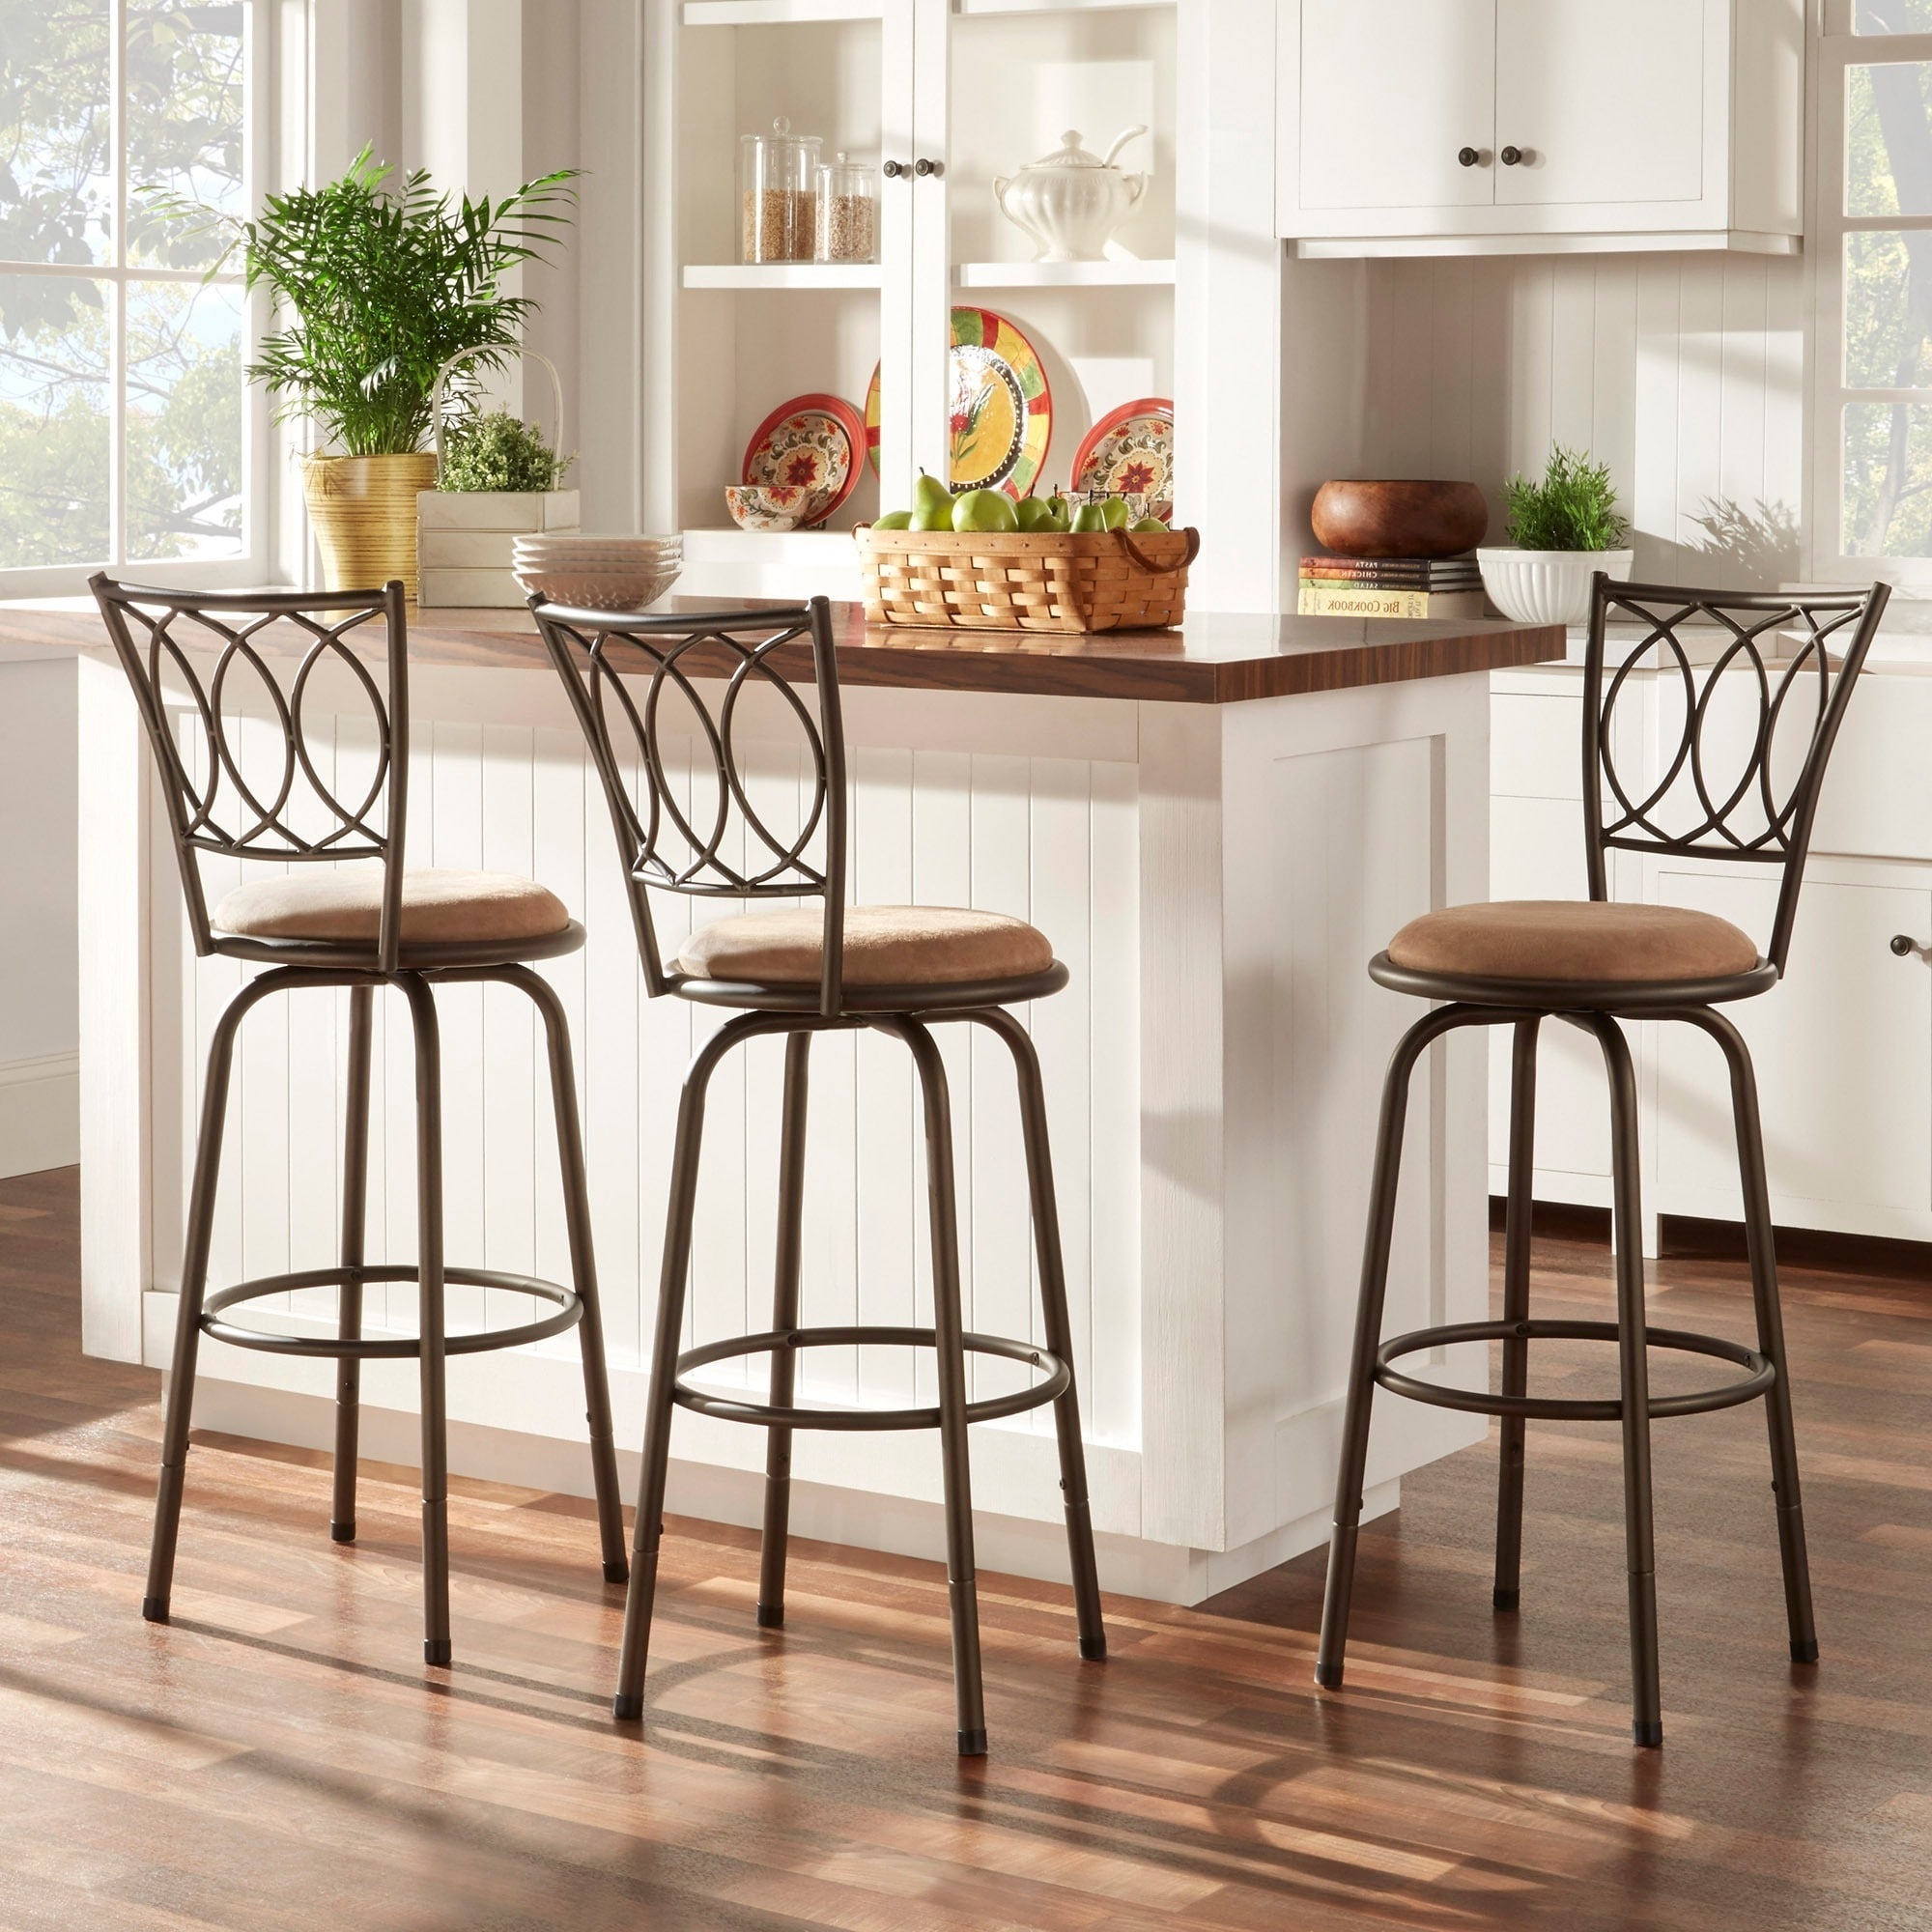 TRIBECCA HOME Avalon Scroll Adjustable Swivel Counter Barstool (Set of 3) at Sears.com